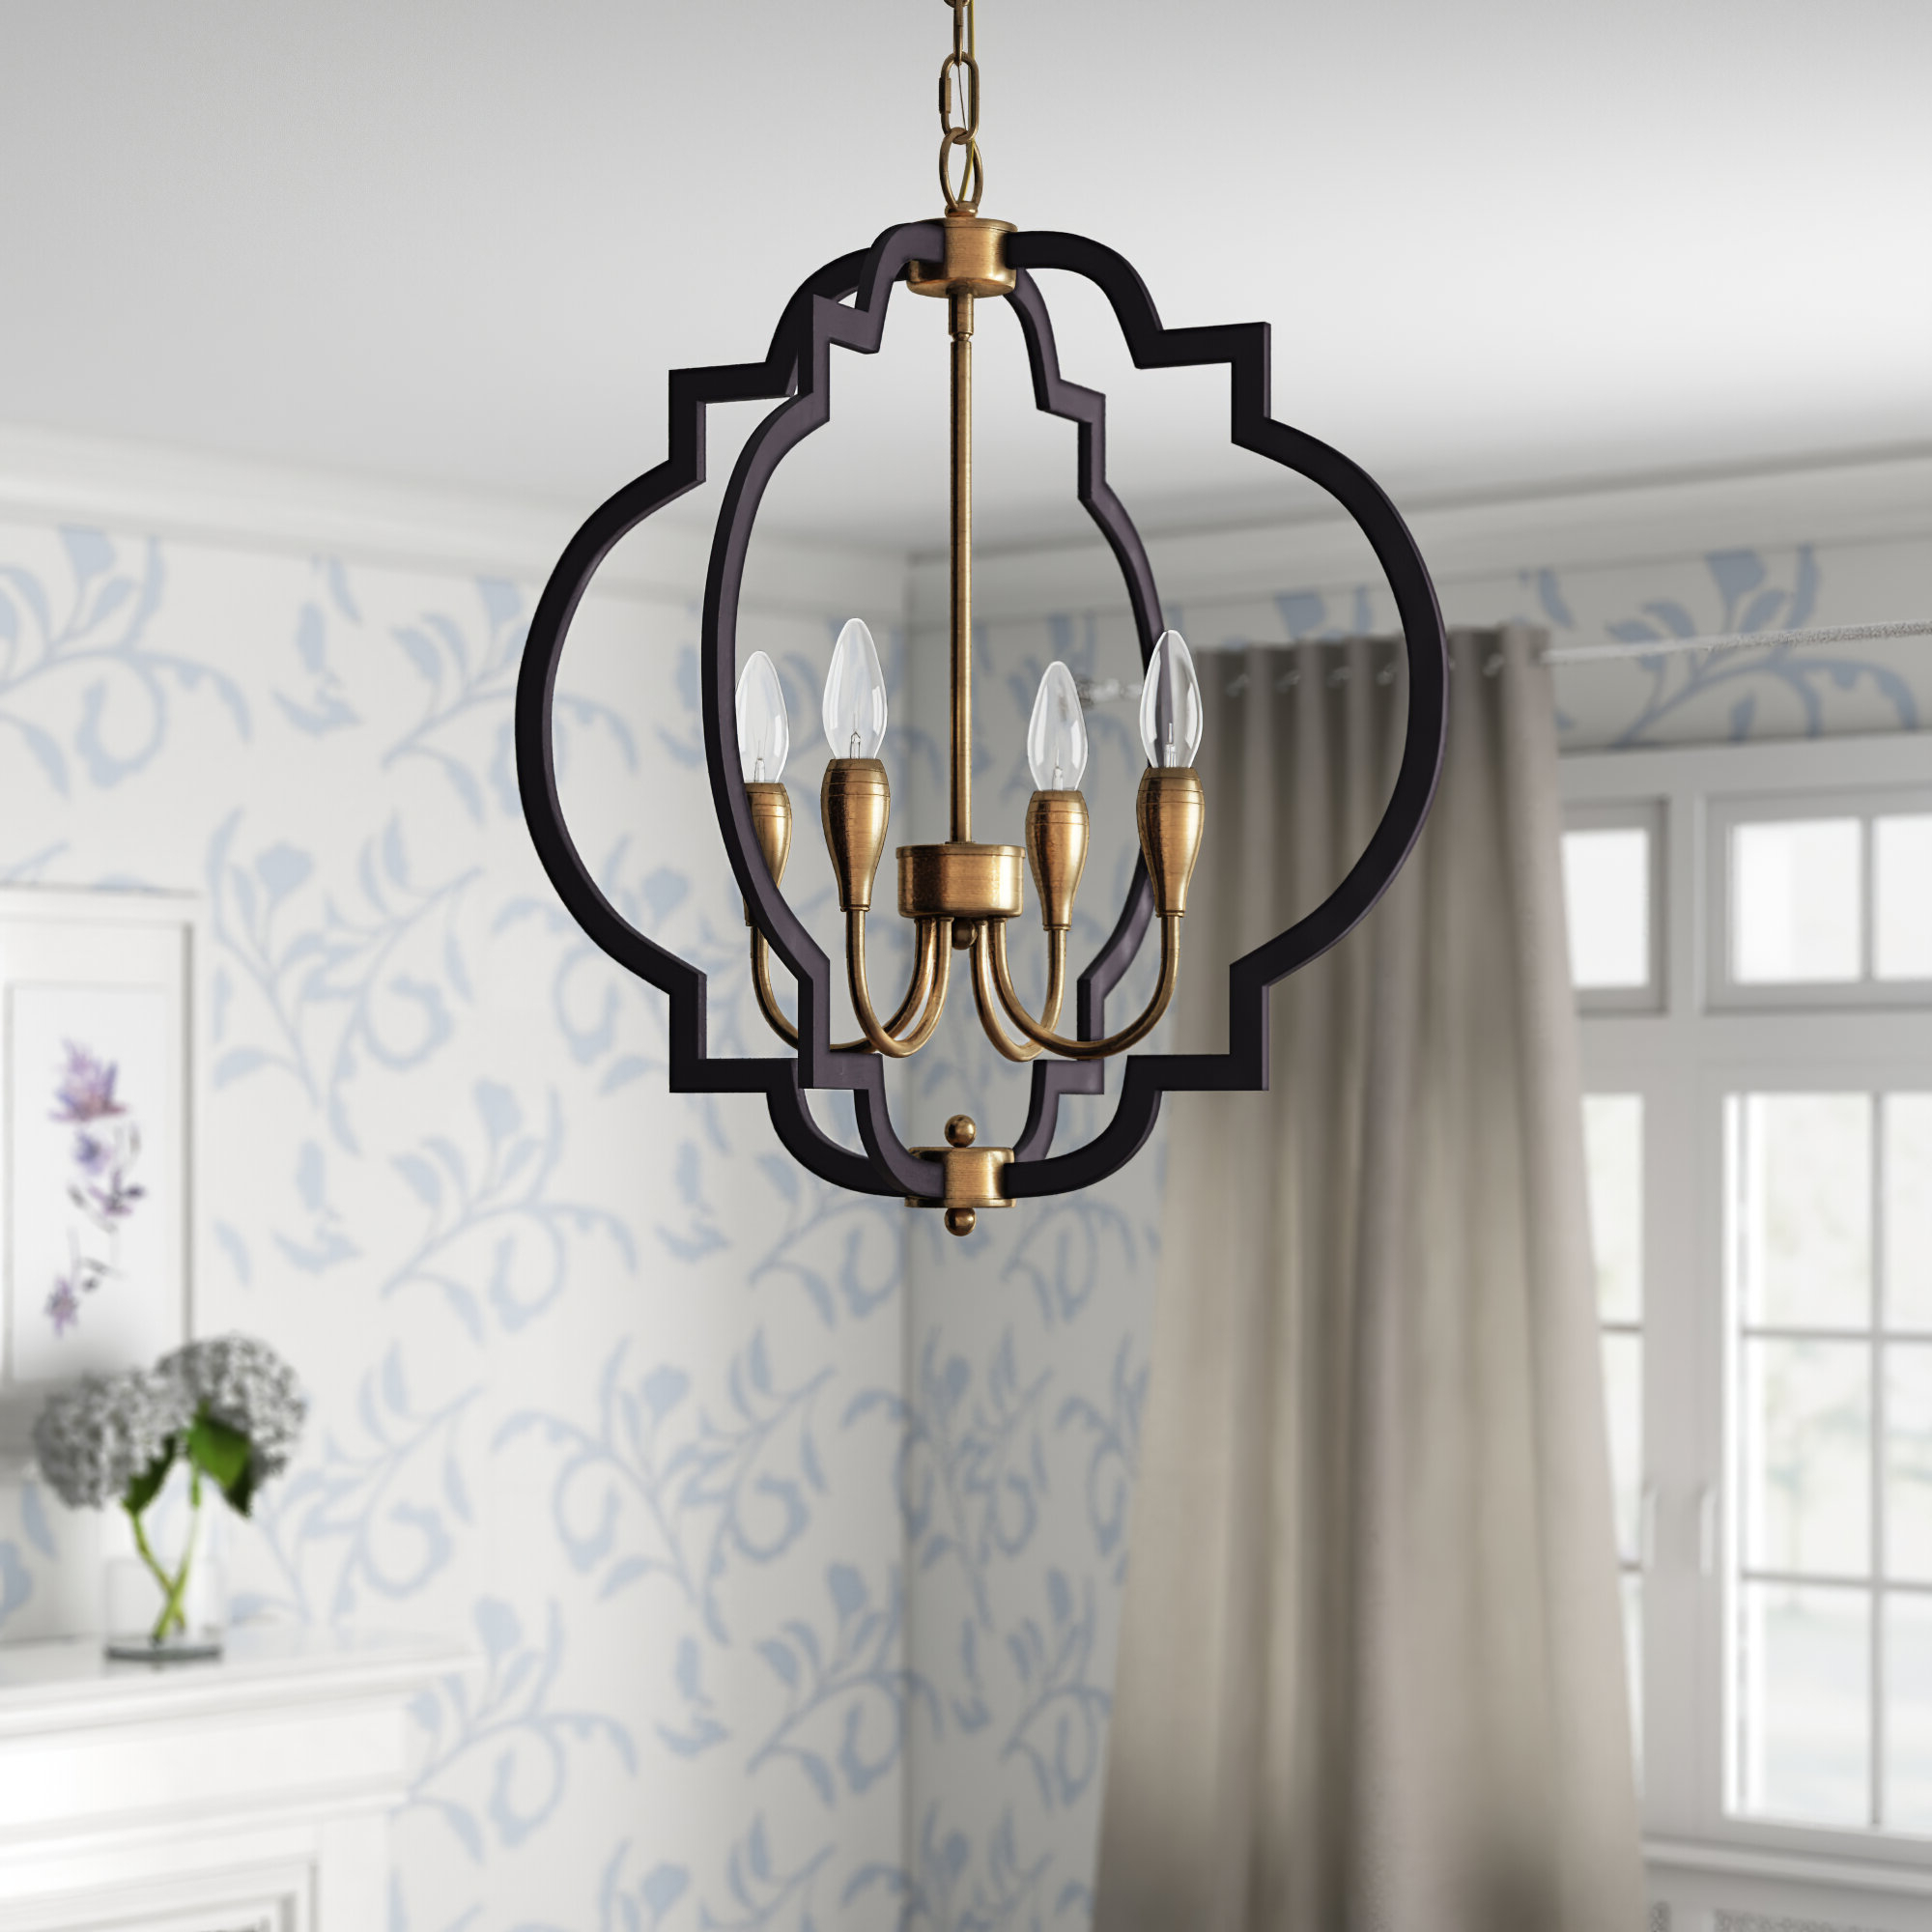 Astin 4 Light Geometric Chandelier Throughout Most Popular Lynn 6 Light Geometric Chandeliers (View 5 of 20)